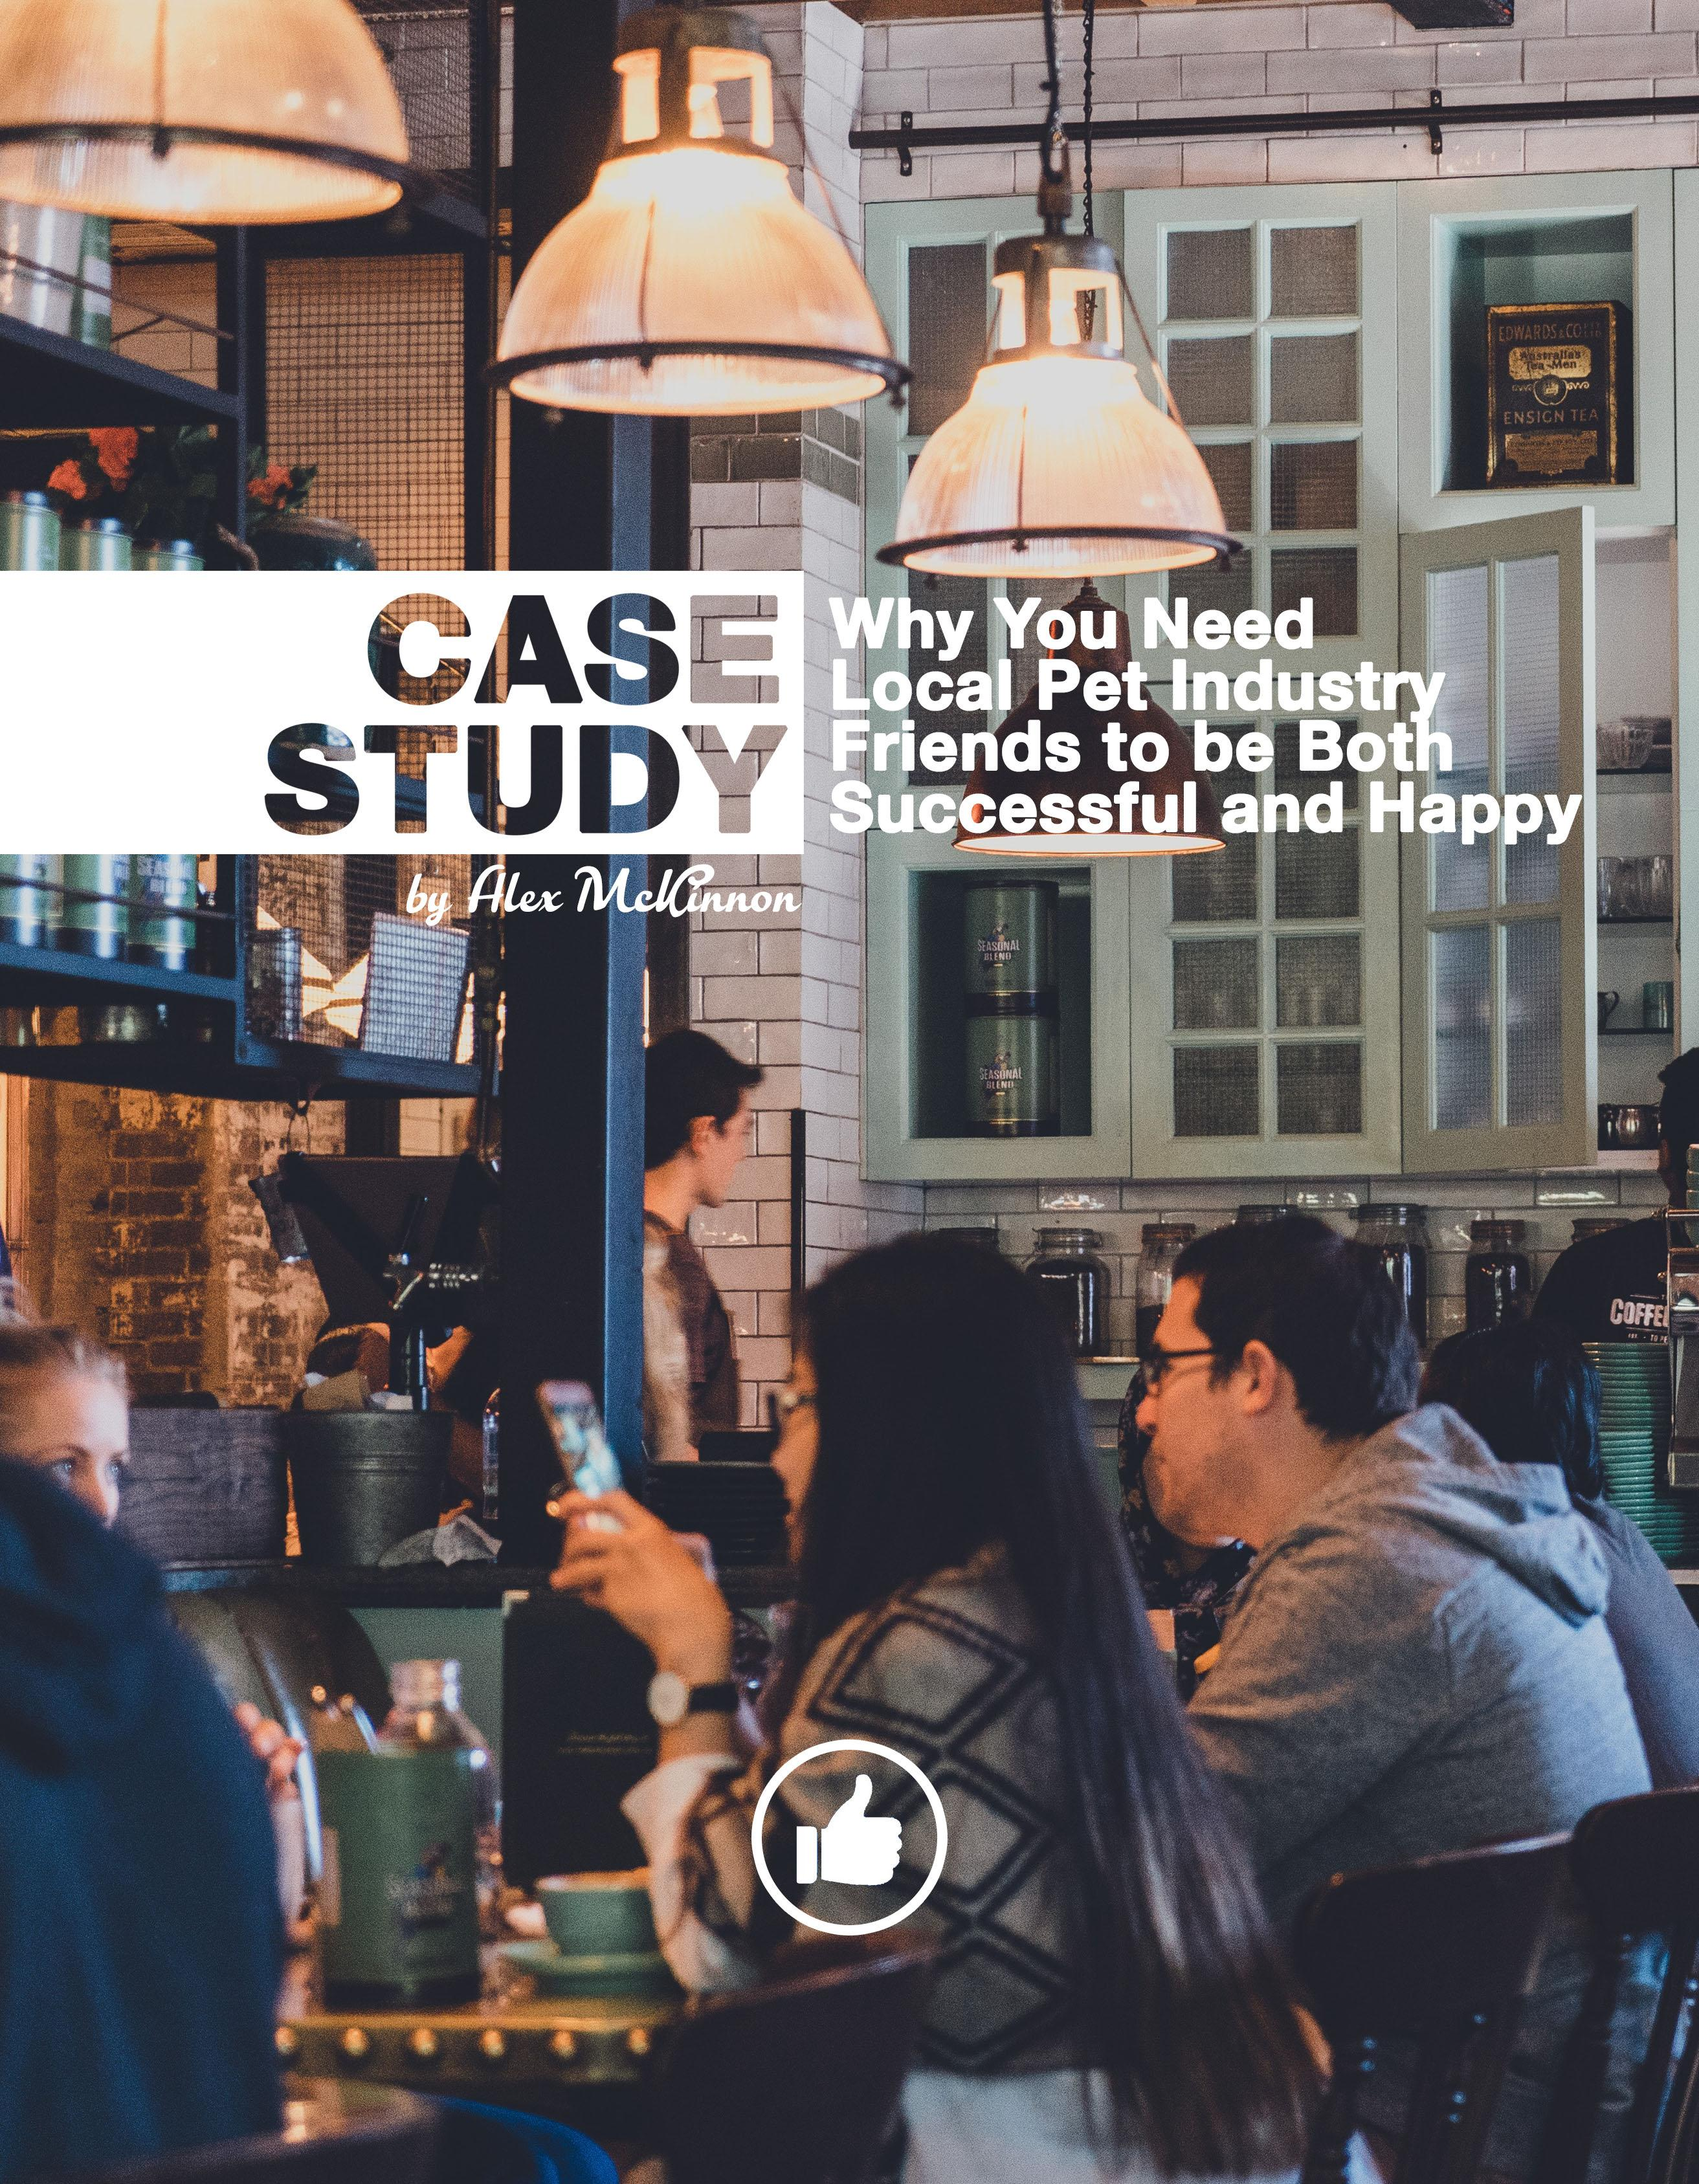 Page 38 of CASE STUDY: WHY YOU NEED LOCAL PET INDUSTRY FRIENDS TO BE BOTH SUCCESSFUL AND HAPPY